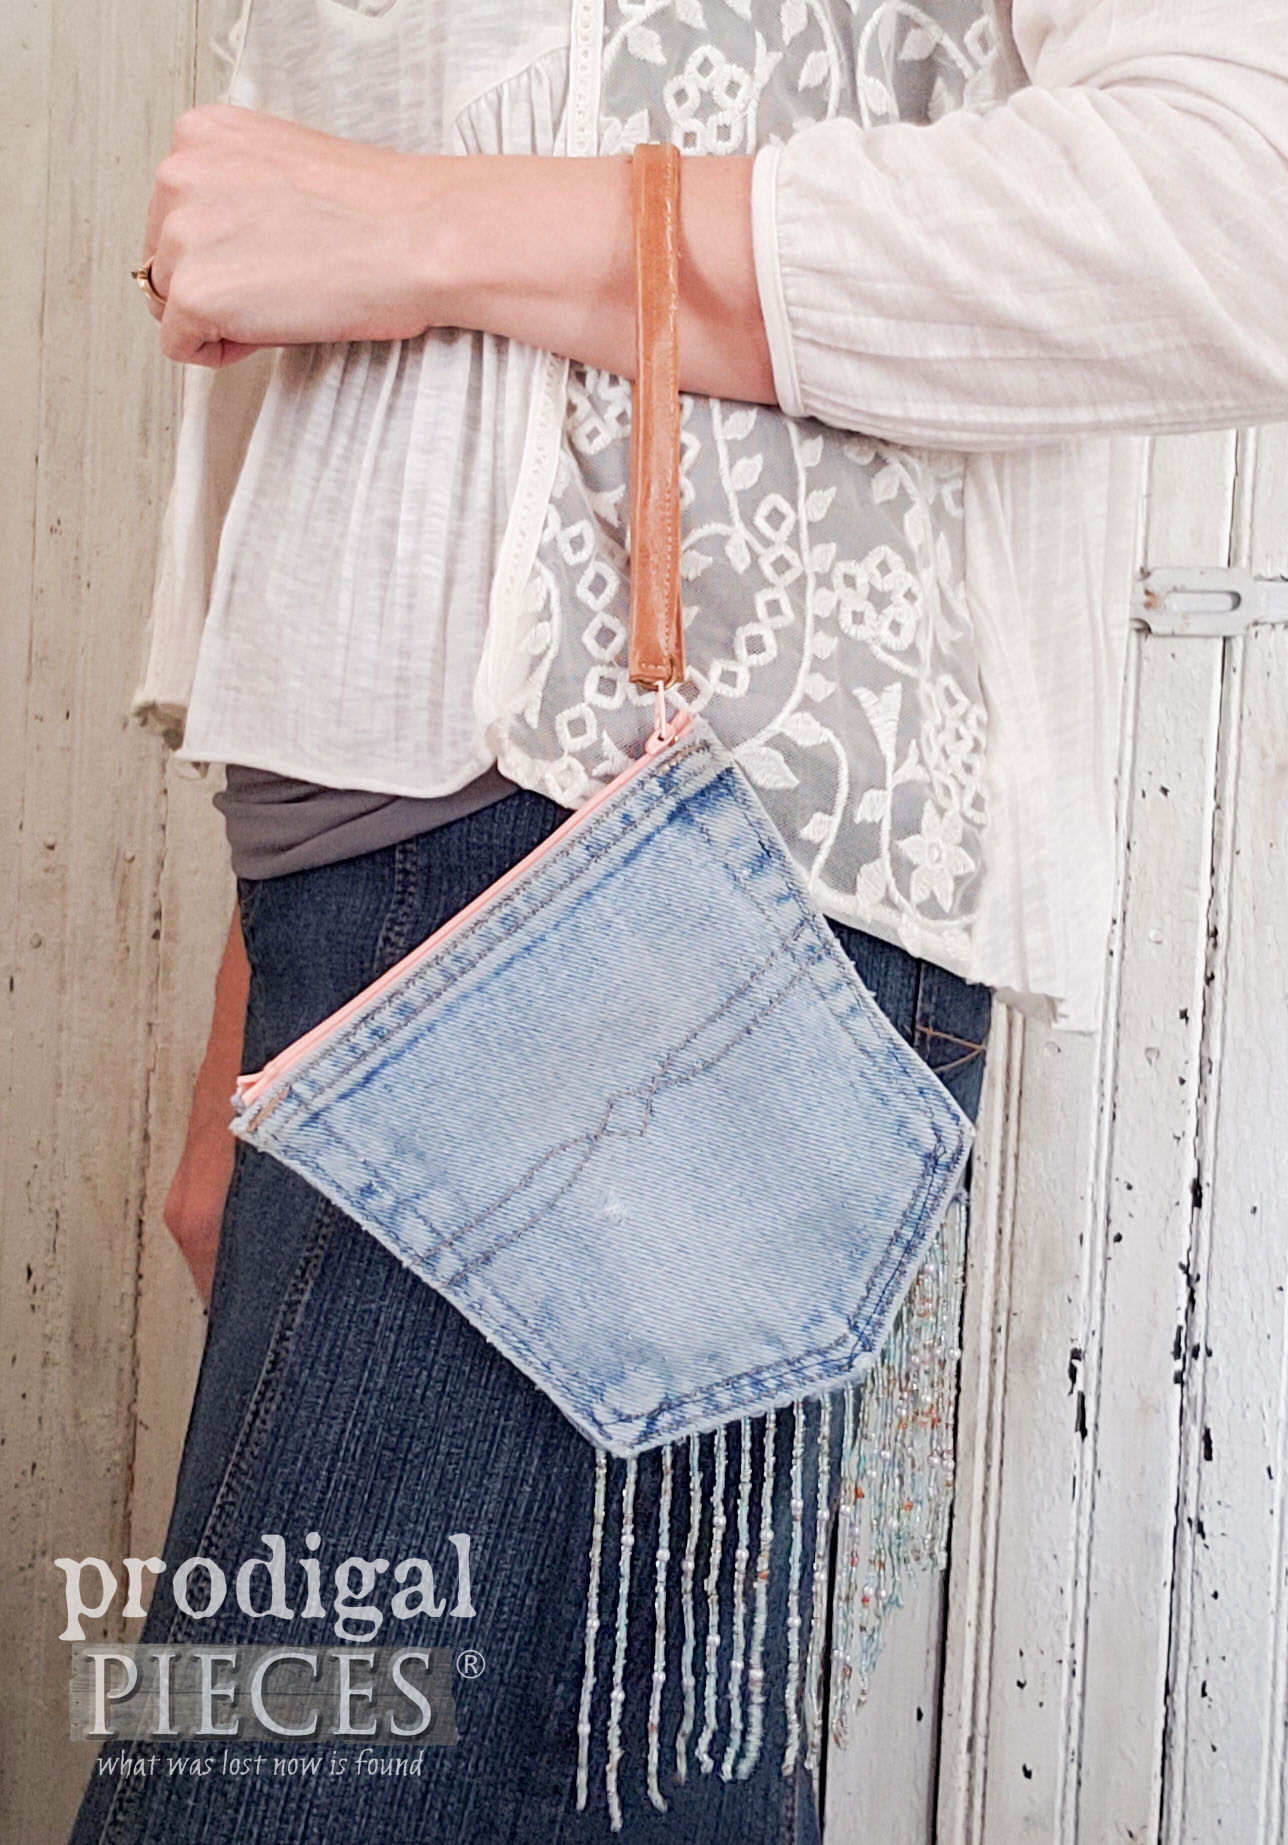 Blue Jean Pocket Purse made from Old Jeans | Video Tutorial by Larissa of Prodigal Pieces | prodigalpieces.com #prodigalpieces #sewing #crafts #fashion #purse #bag #upcycle